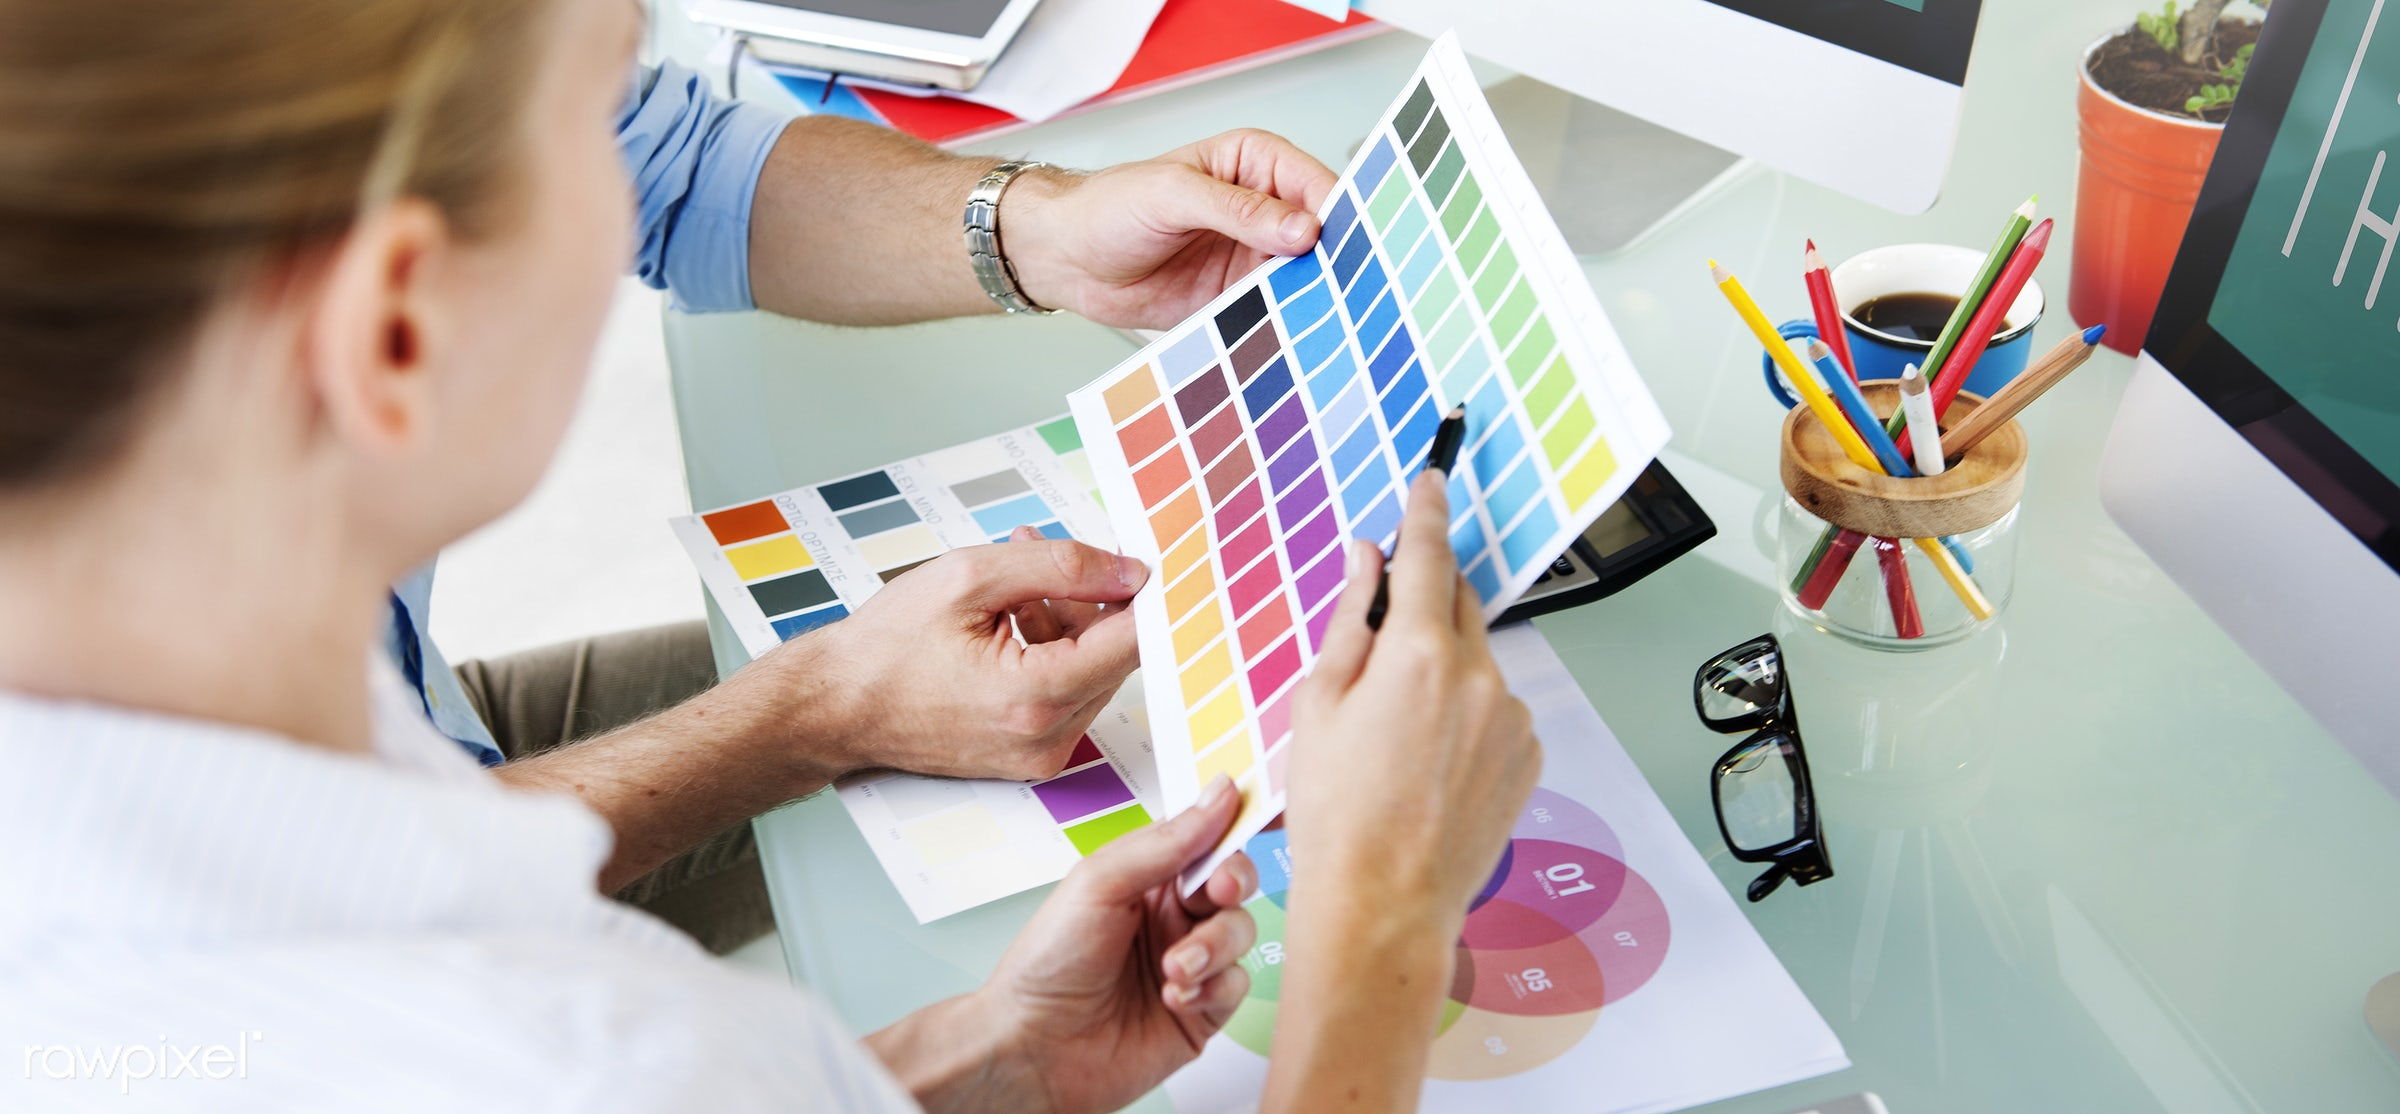 assistance, brainstorming, coffee, color swatch, communication, computer, connection, creative occupation, creativity,...